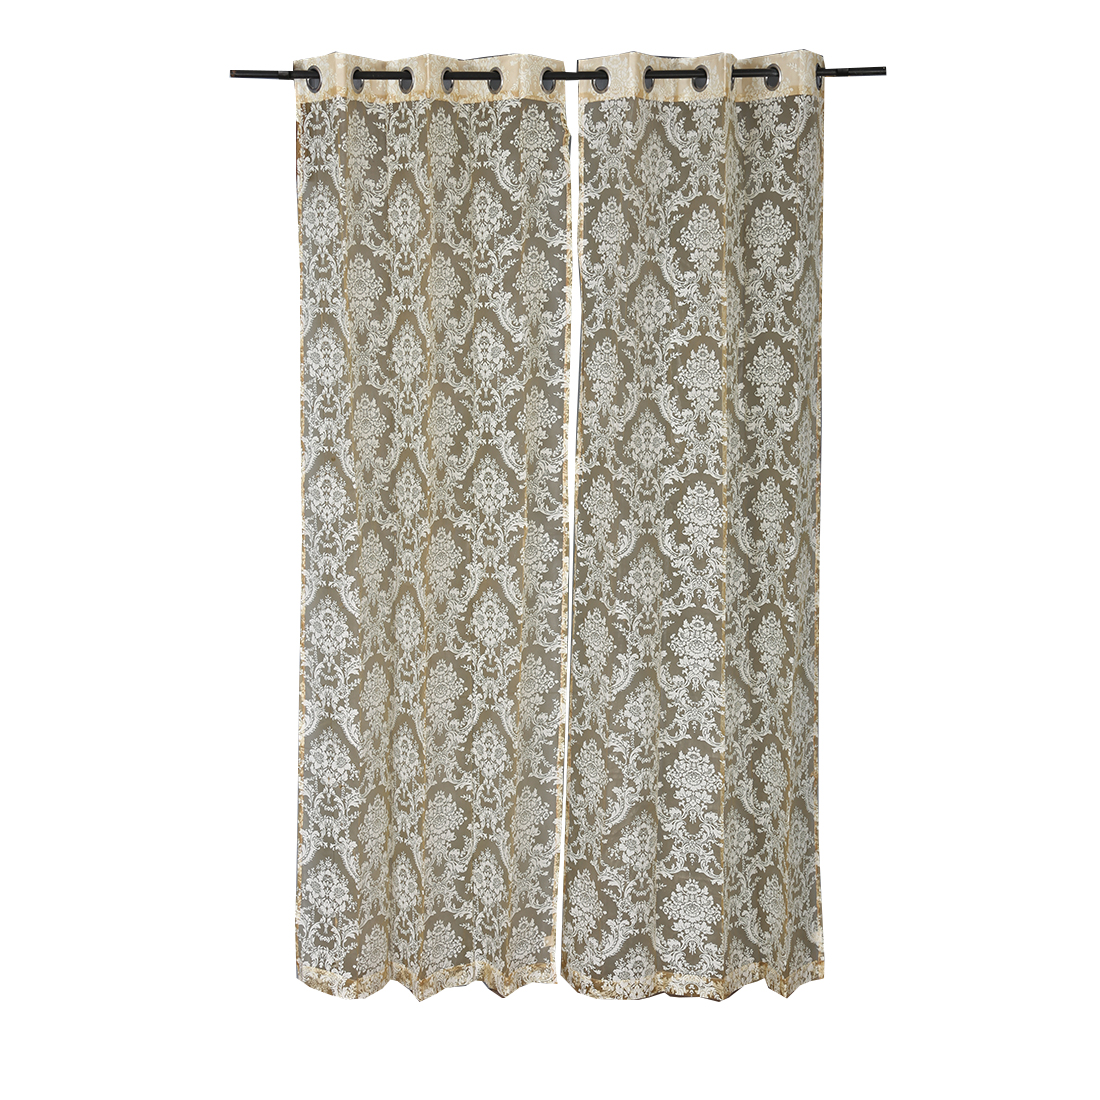 Amour Door Curtain Rose Set of 2 Cotton Polyester Door Curtains in Rose Colour by Living Essence